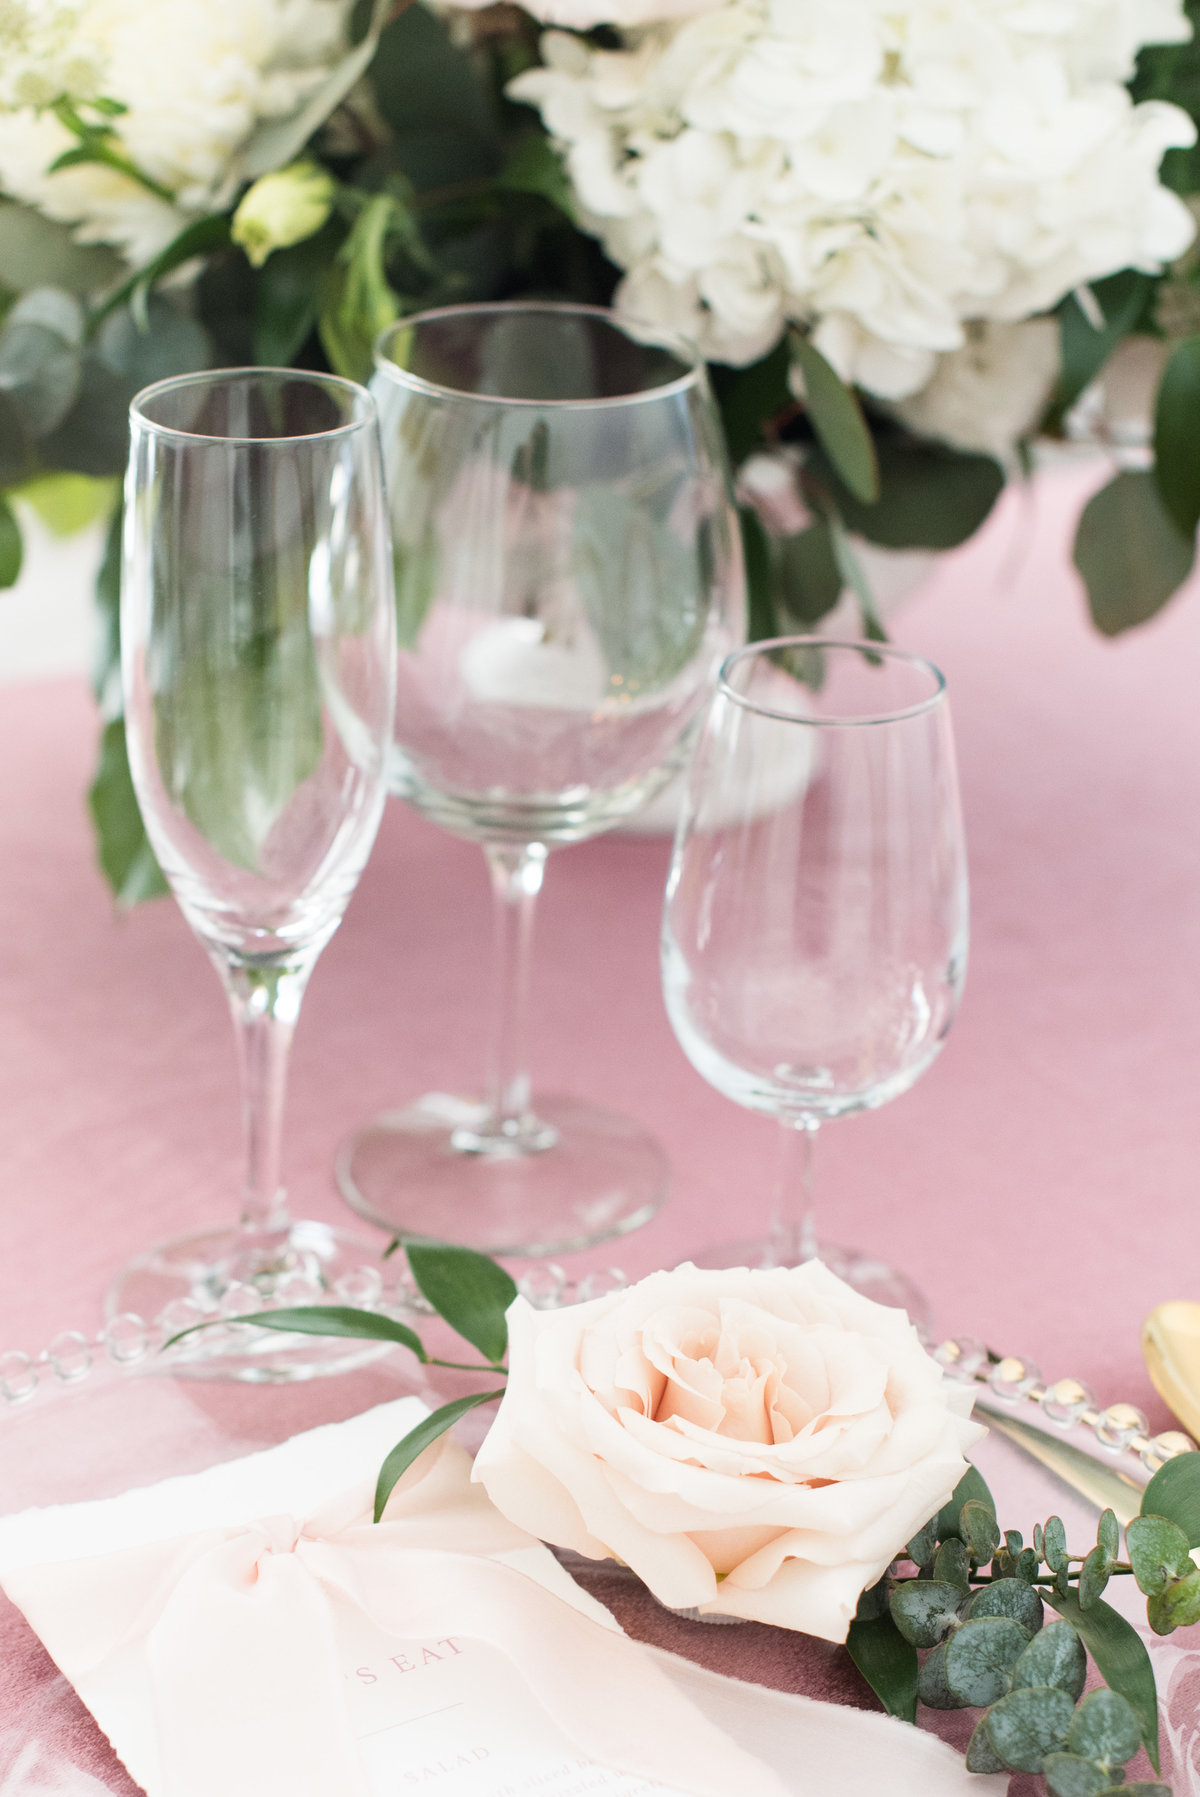 Glassware on velvet mauve table cloth from Tents & Events in Thunder Bay